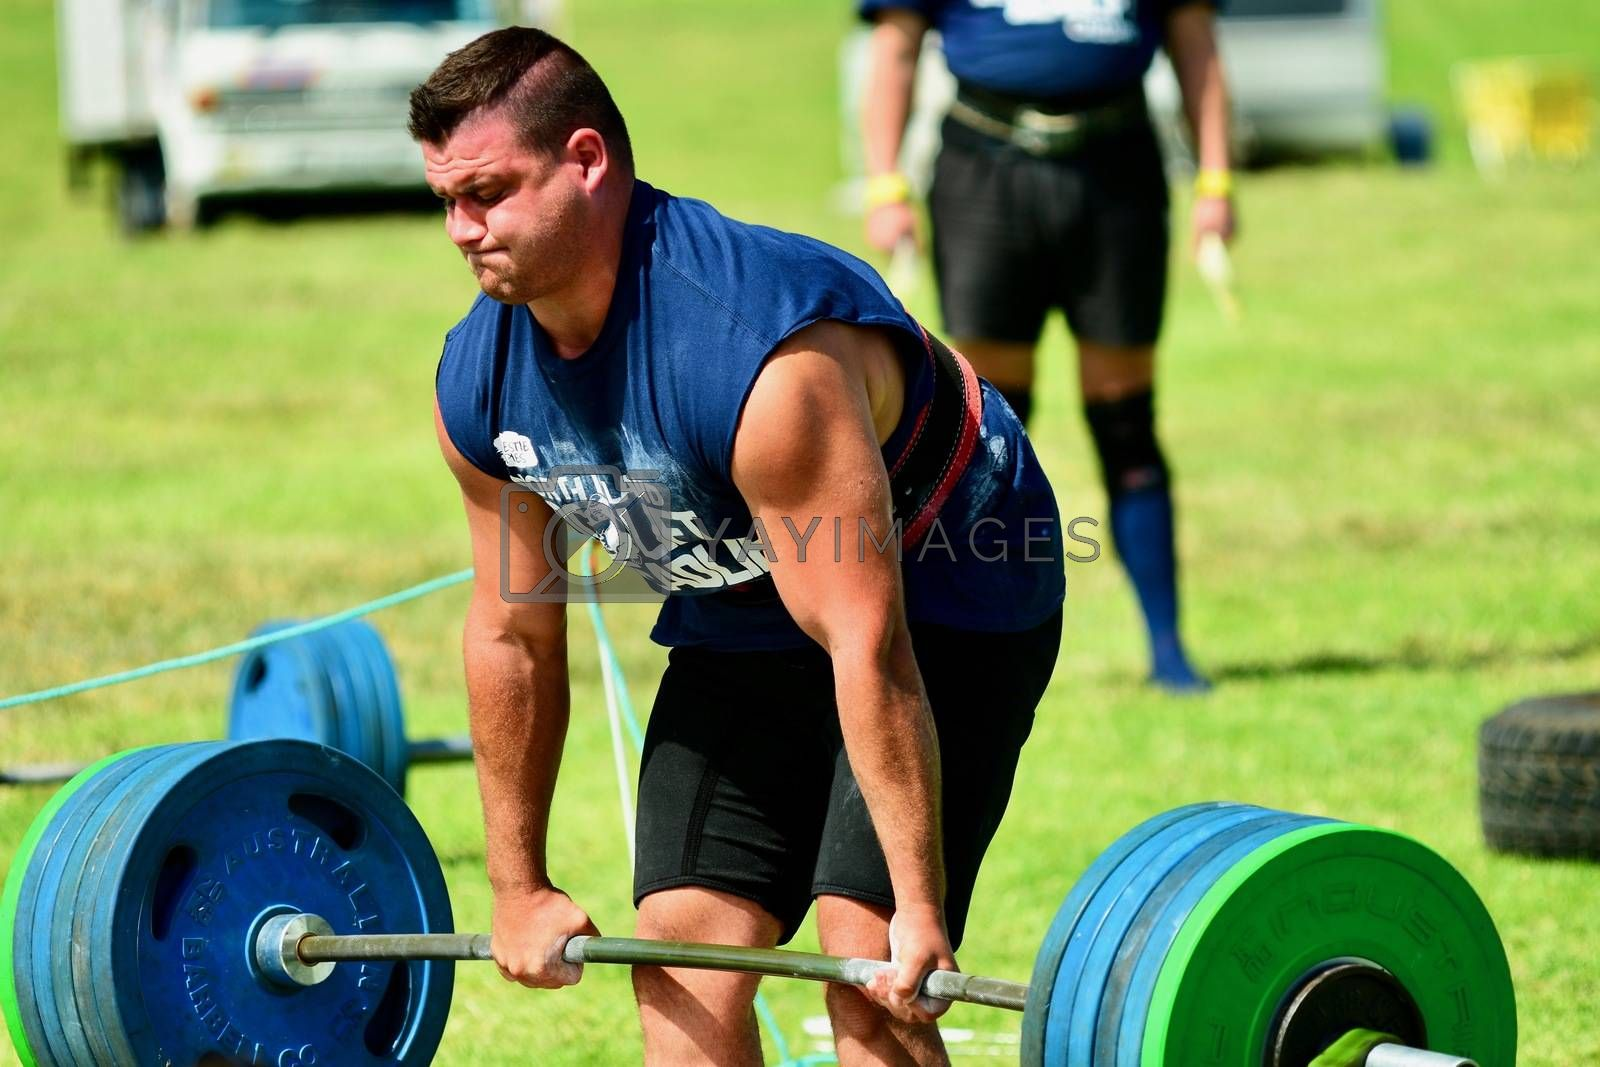 Strongman training in a public park, log Lift and Deadlift training